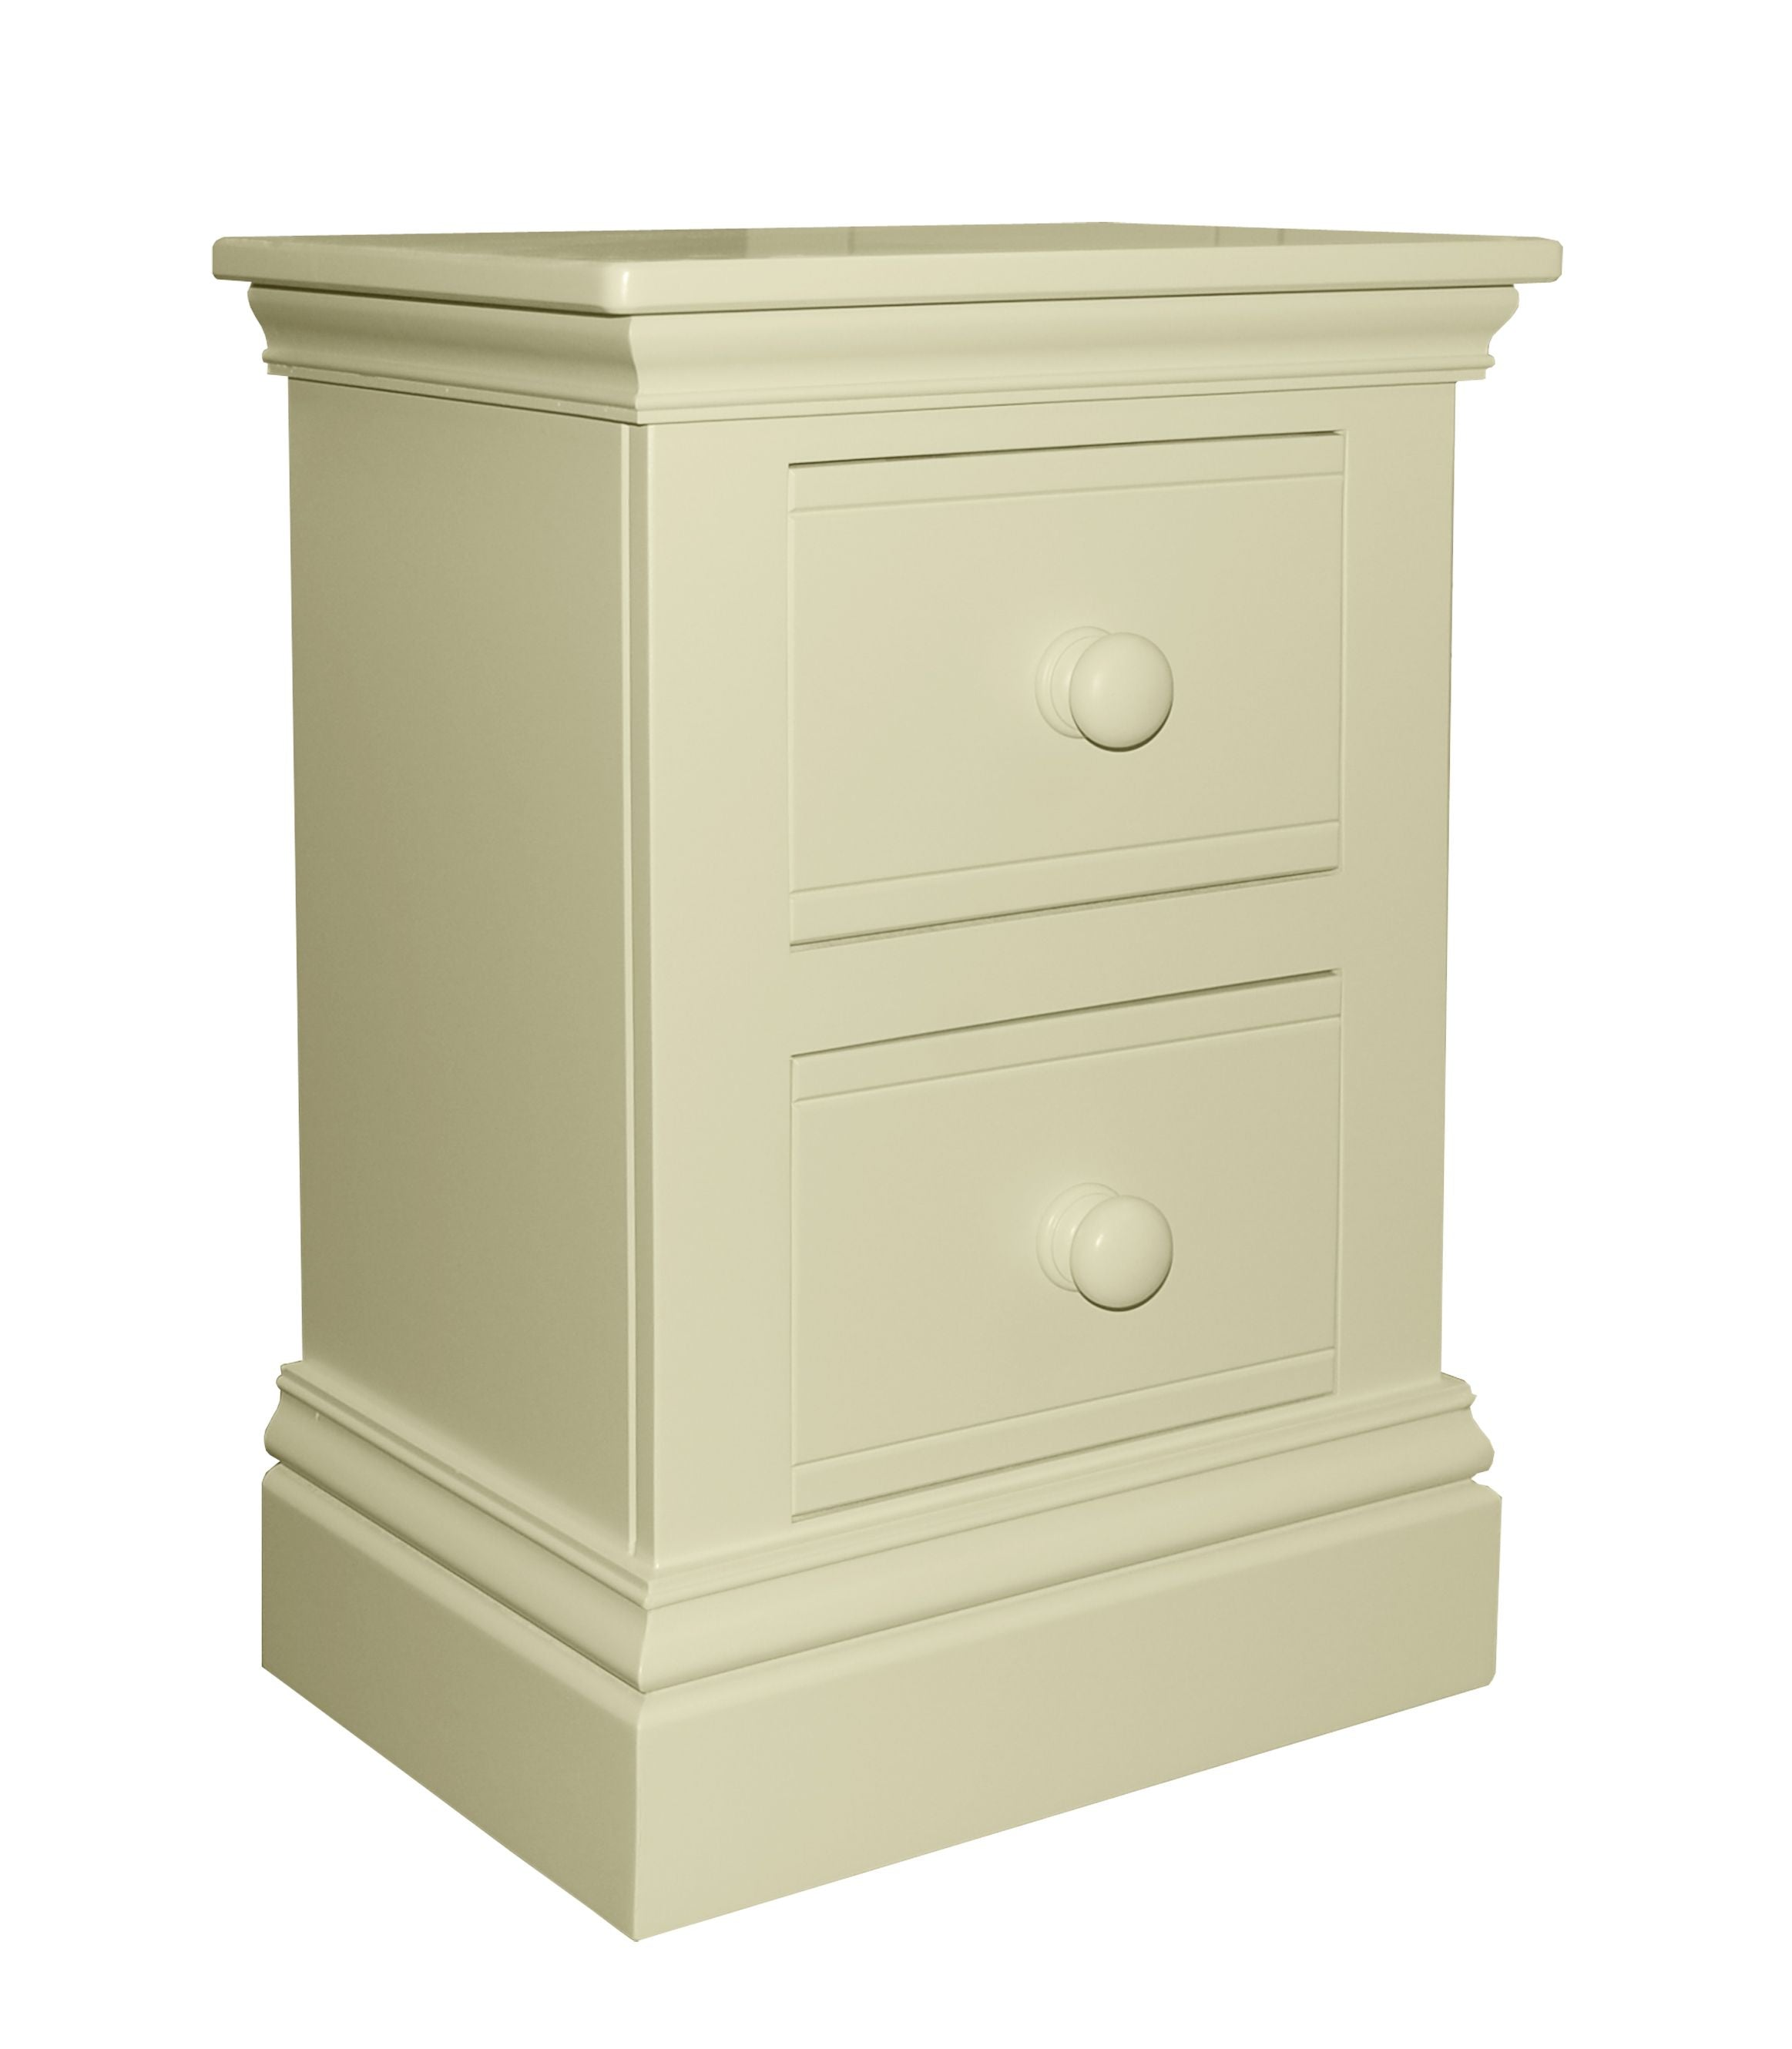 New Hampton 2 Drawer Bedside Table - Ivory